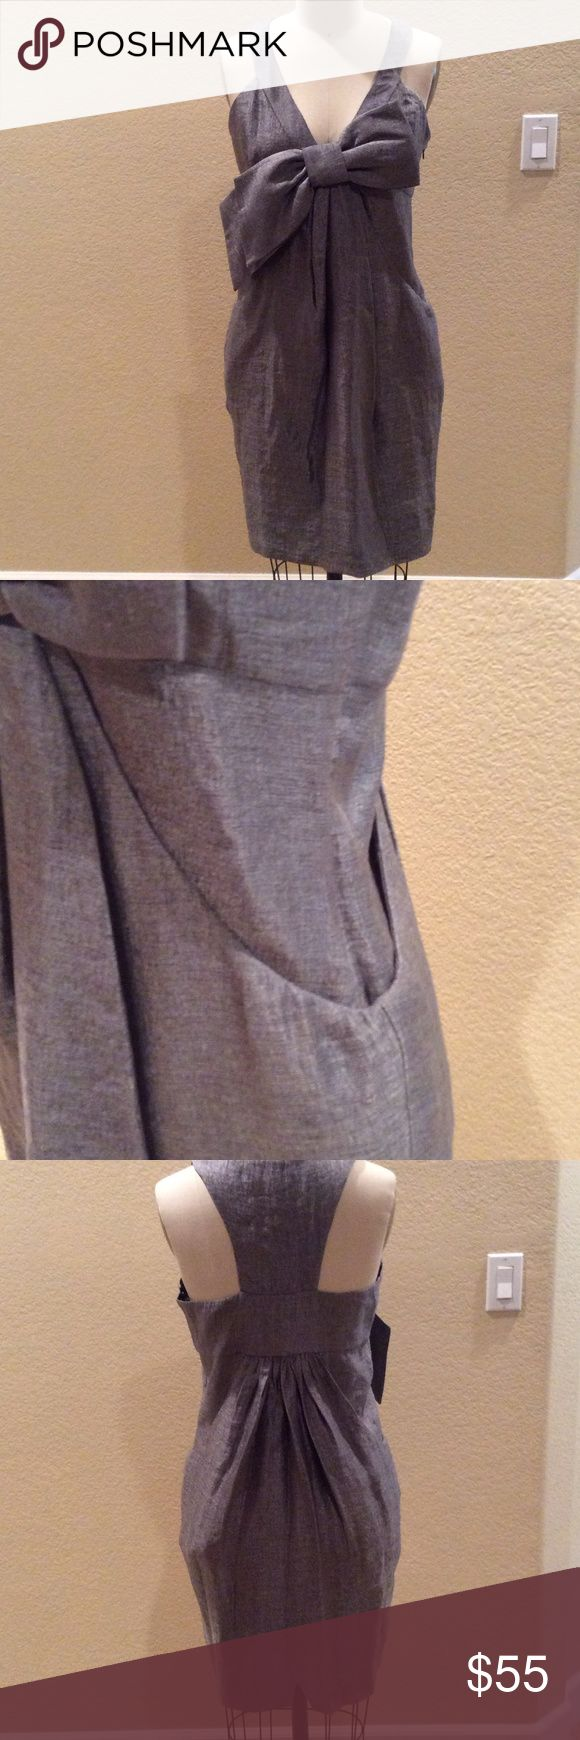 Bcbg silver jumper Perfect holiday party dress w/ front bow.  Tag says size 10, but it fits more like a size 6. Roomy dress in general. Never worn in perfect condition. BCBGeneration Dresses